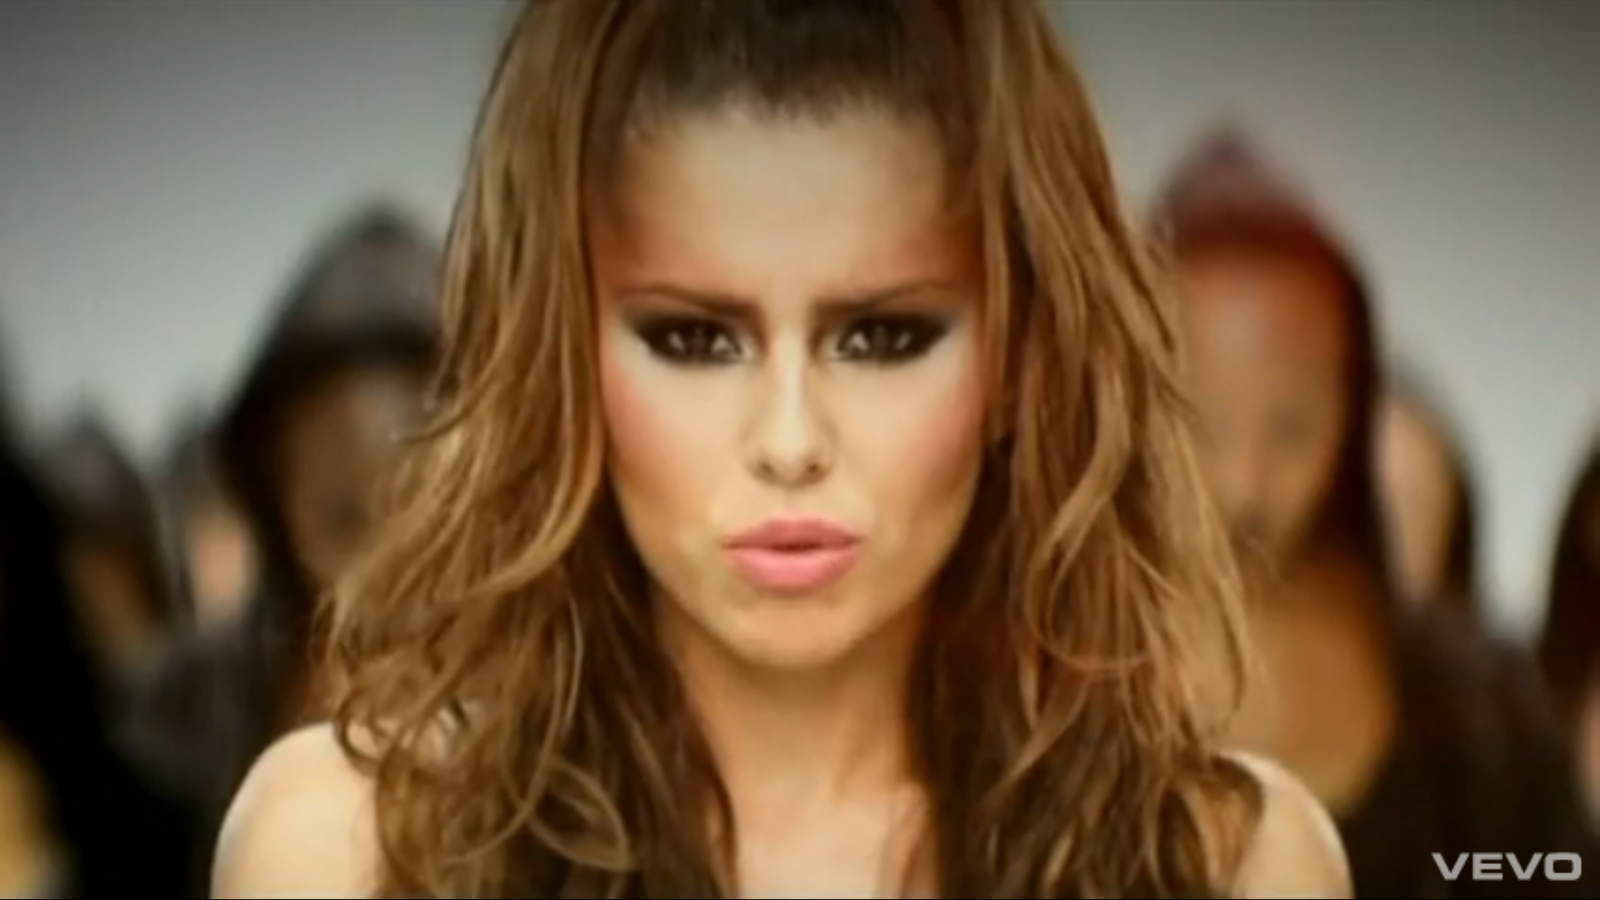 a2 media studies star image essay cheryl cole fight for this love includes many close up shots of cheryl cole these shots allow the audience to focus and recognize her face as well as observe her